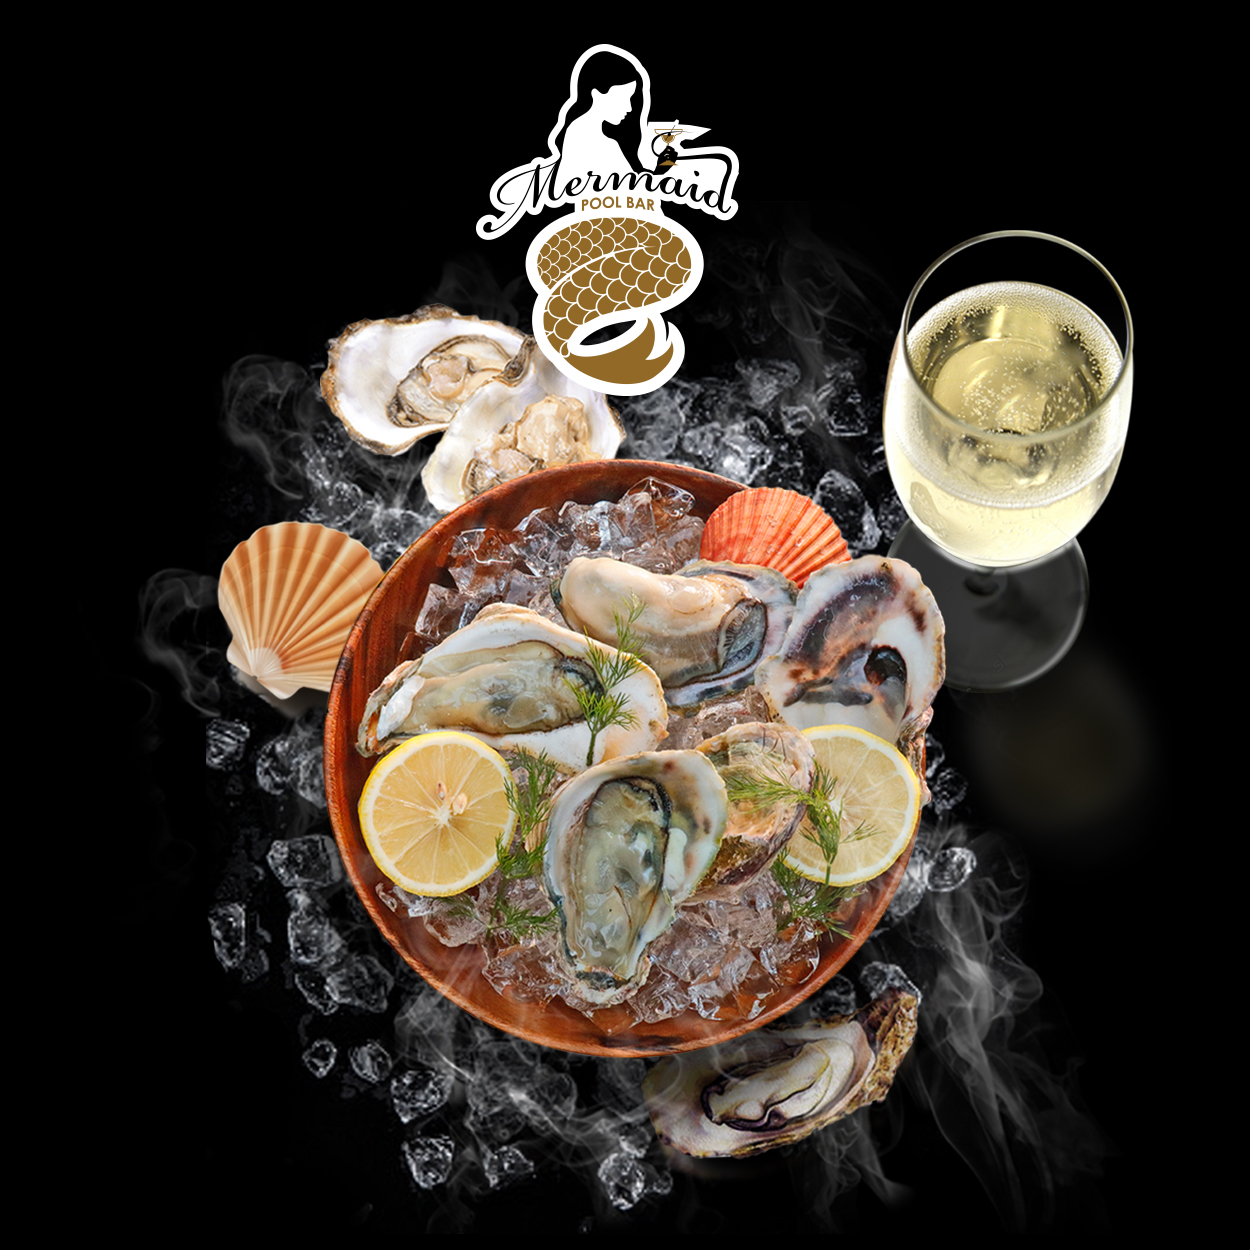 Oyster-and-pairing-treats